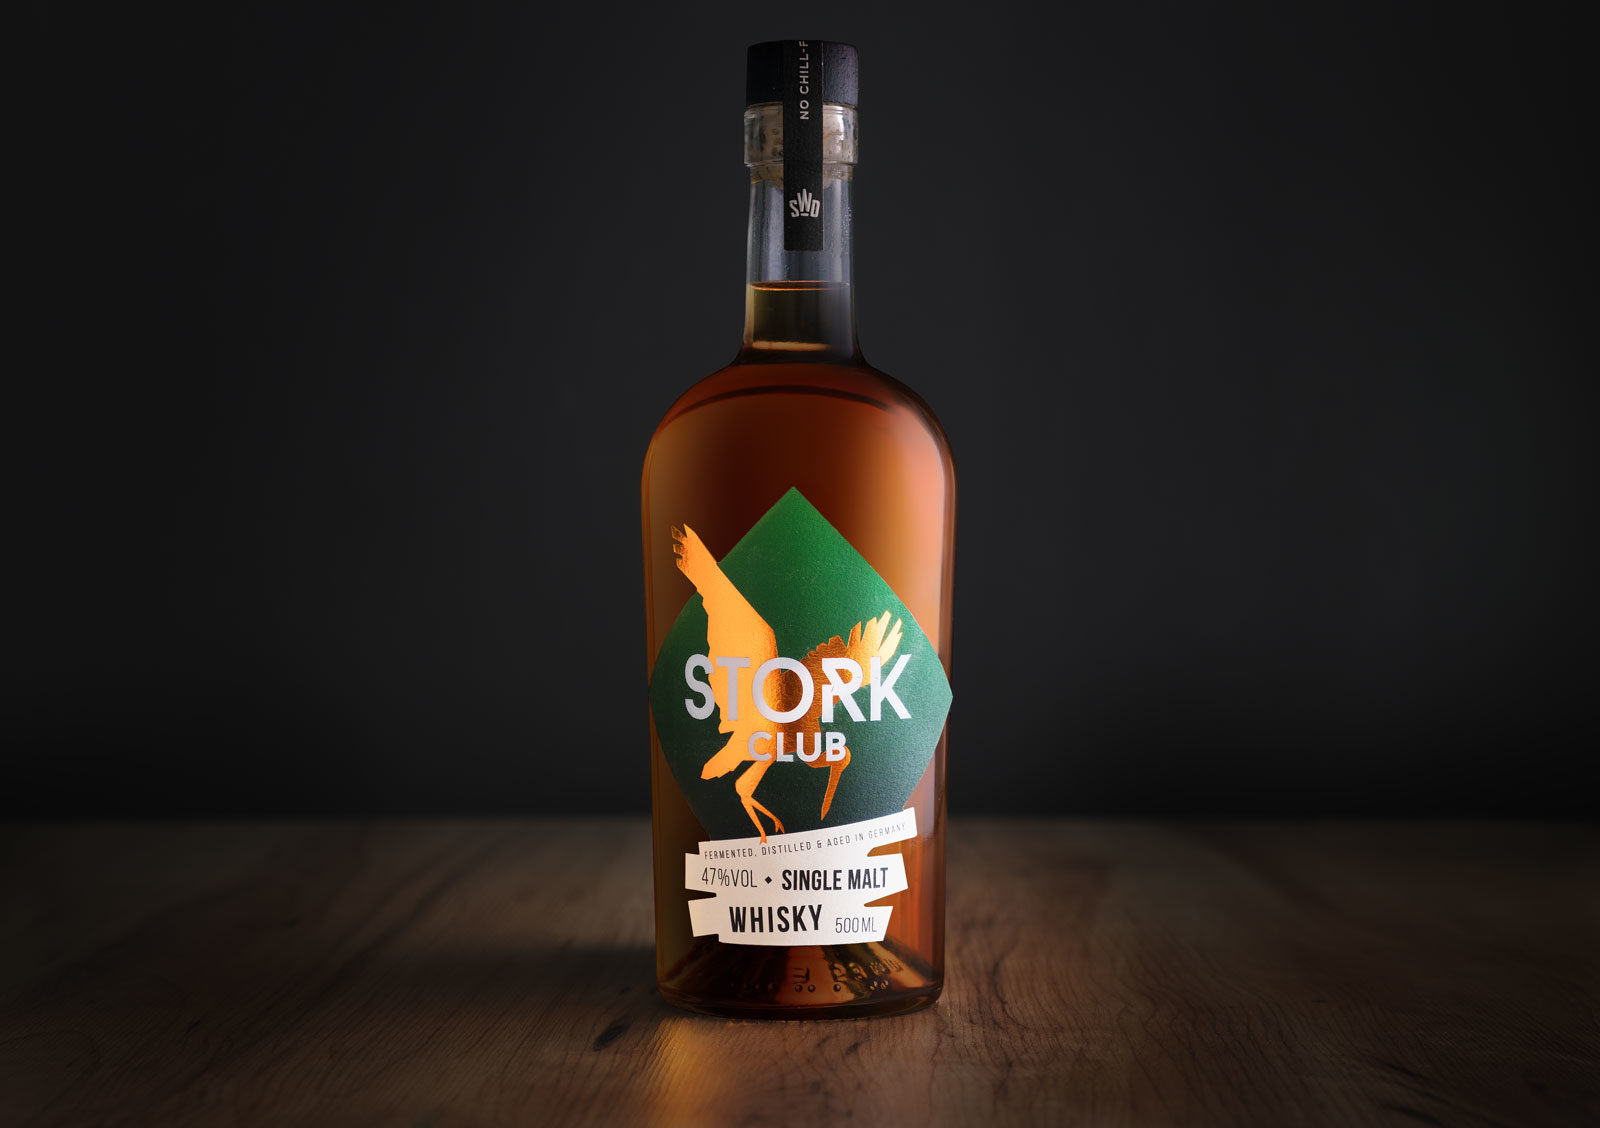 Editienne Grafikdesign - Kommunikationsdesign Berlin- Packaging Design- Stork Club Whisky